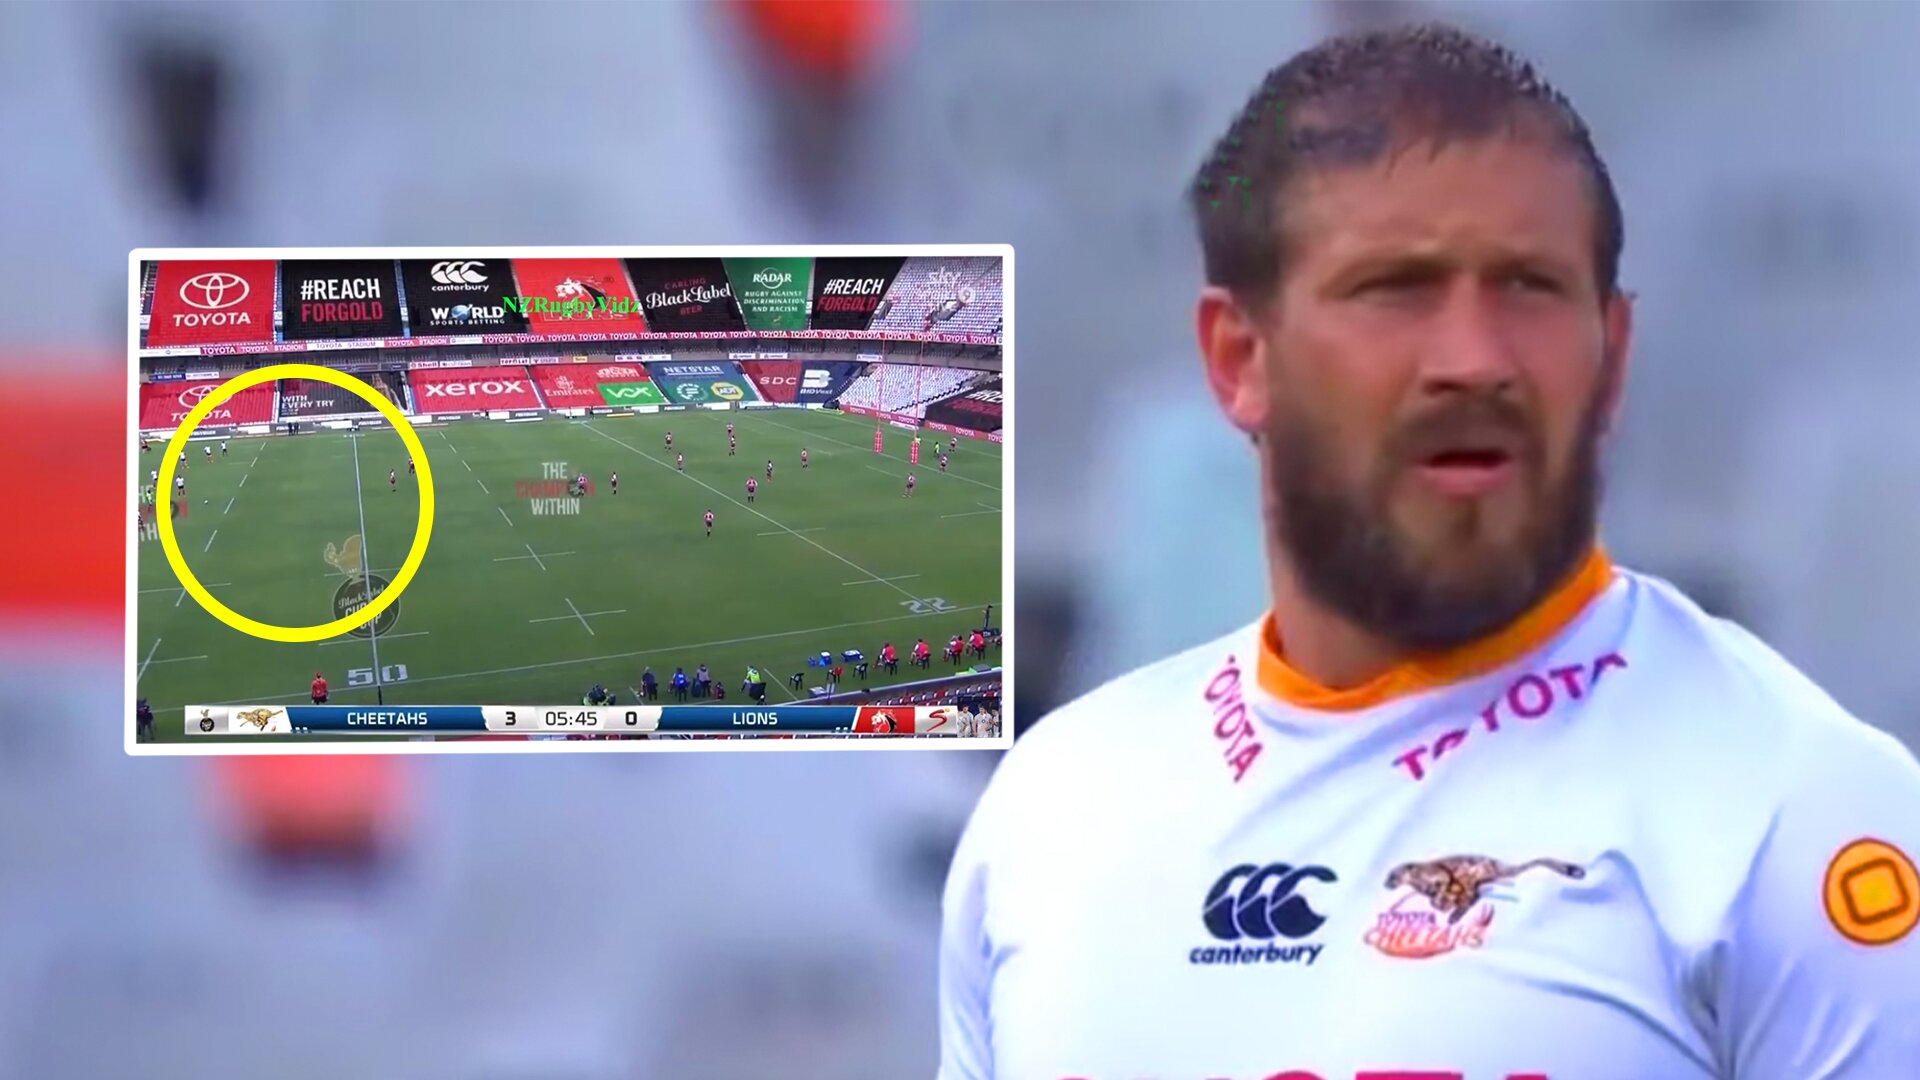 Frans Steyn has just wowed rugby fans with an incredible 70 metre strike